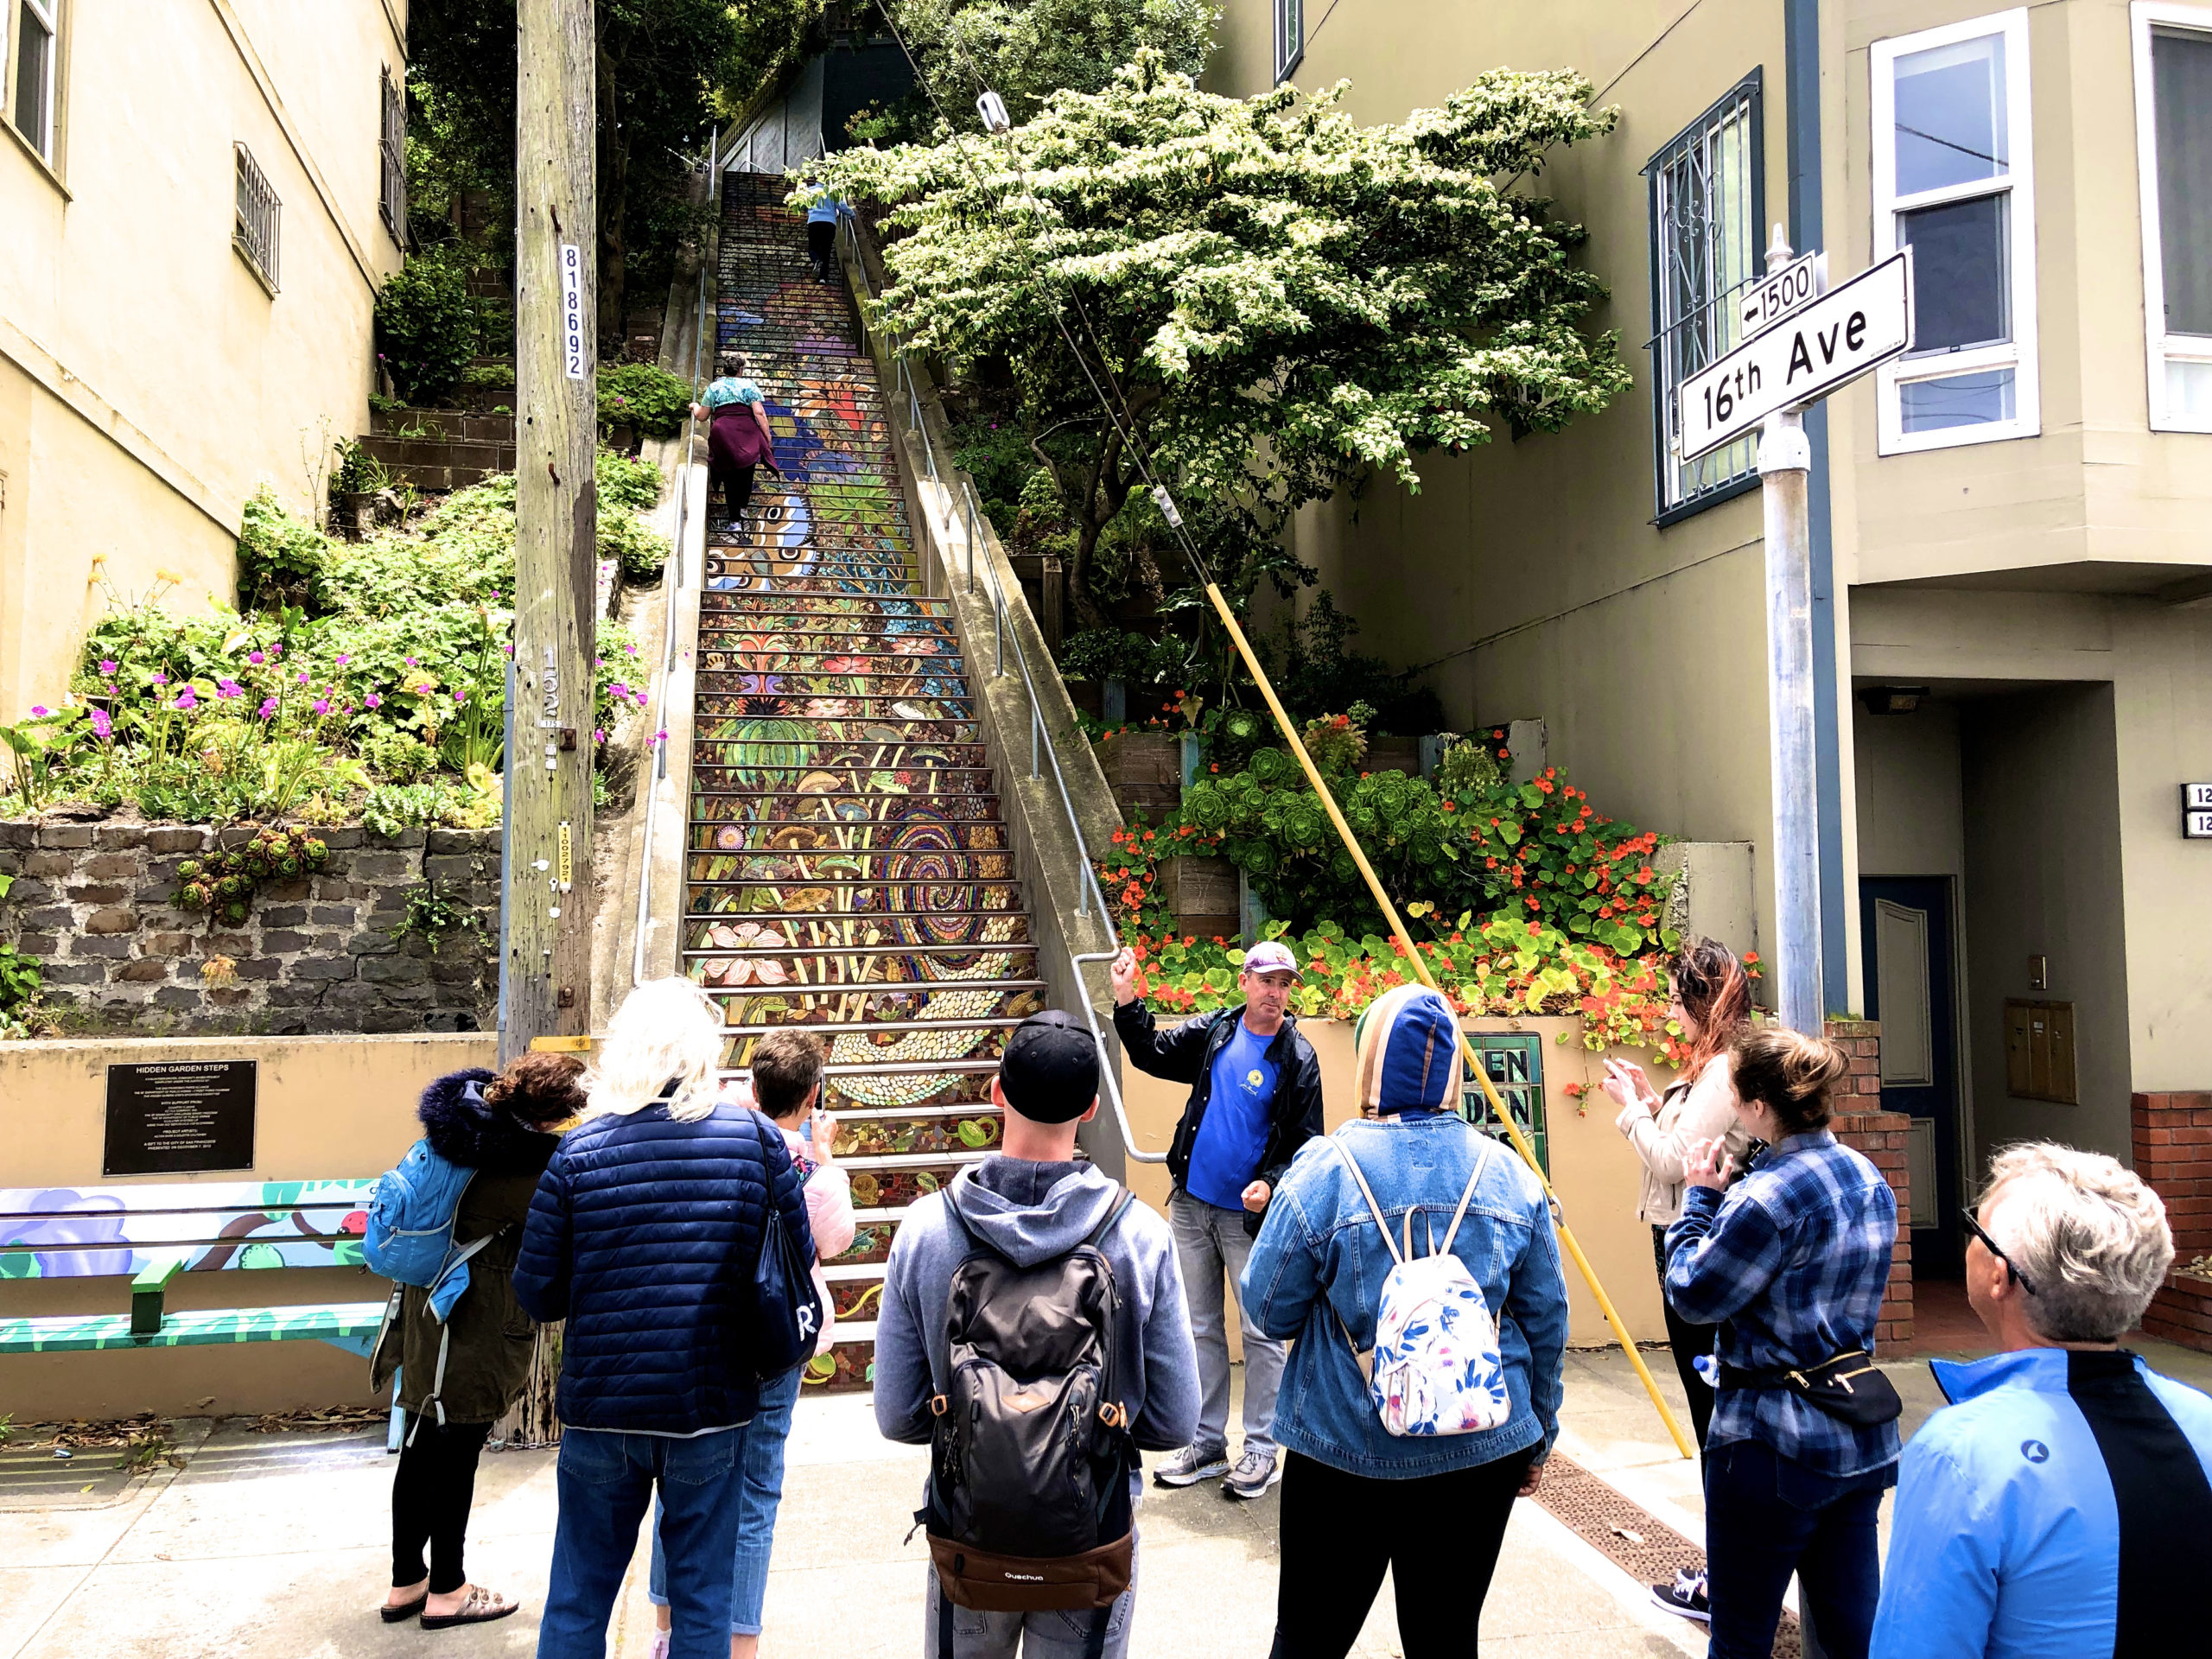 the second hidden gardens staircase on 16th Avenue